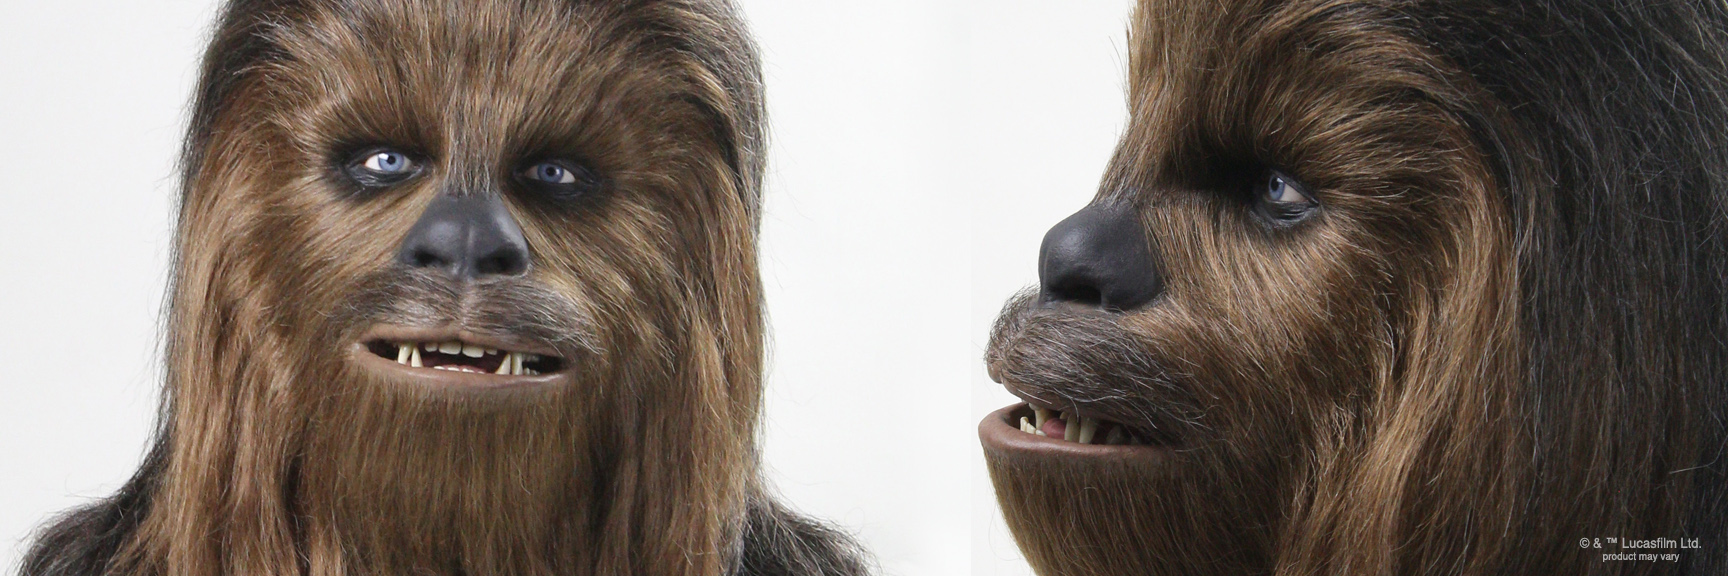 star wars bust collectible Chewbacca 1:1